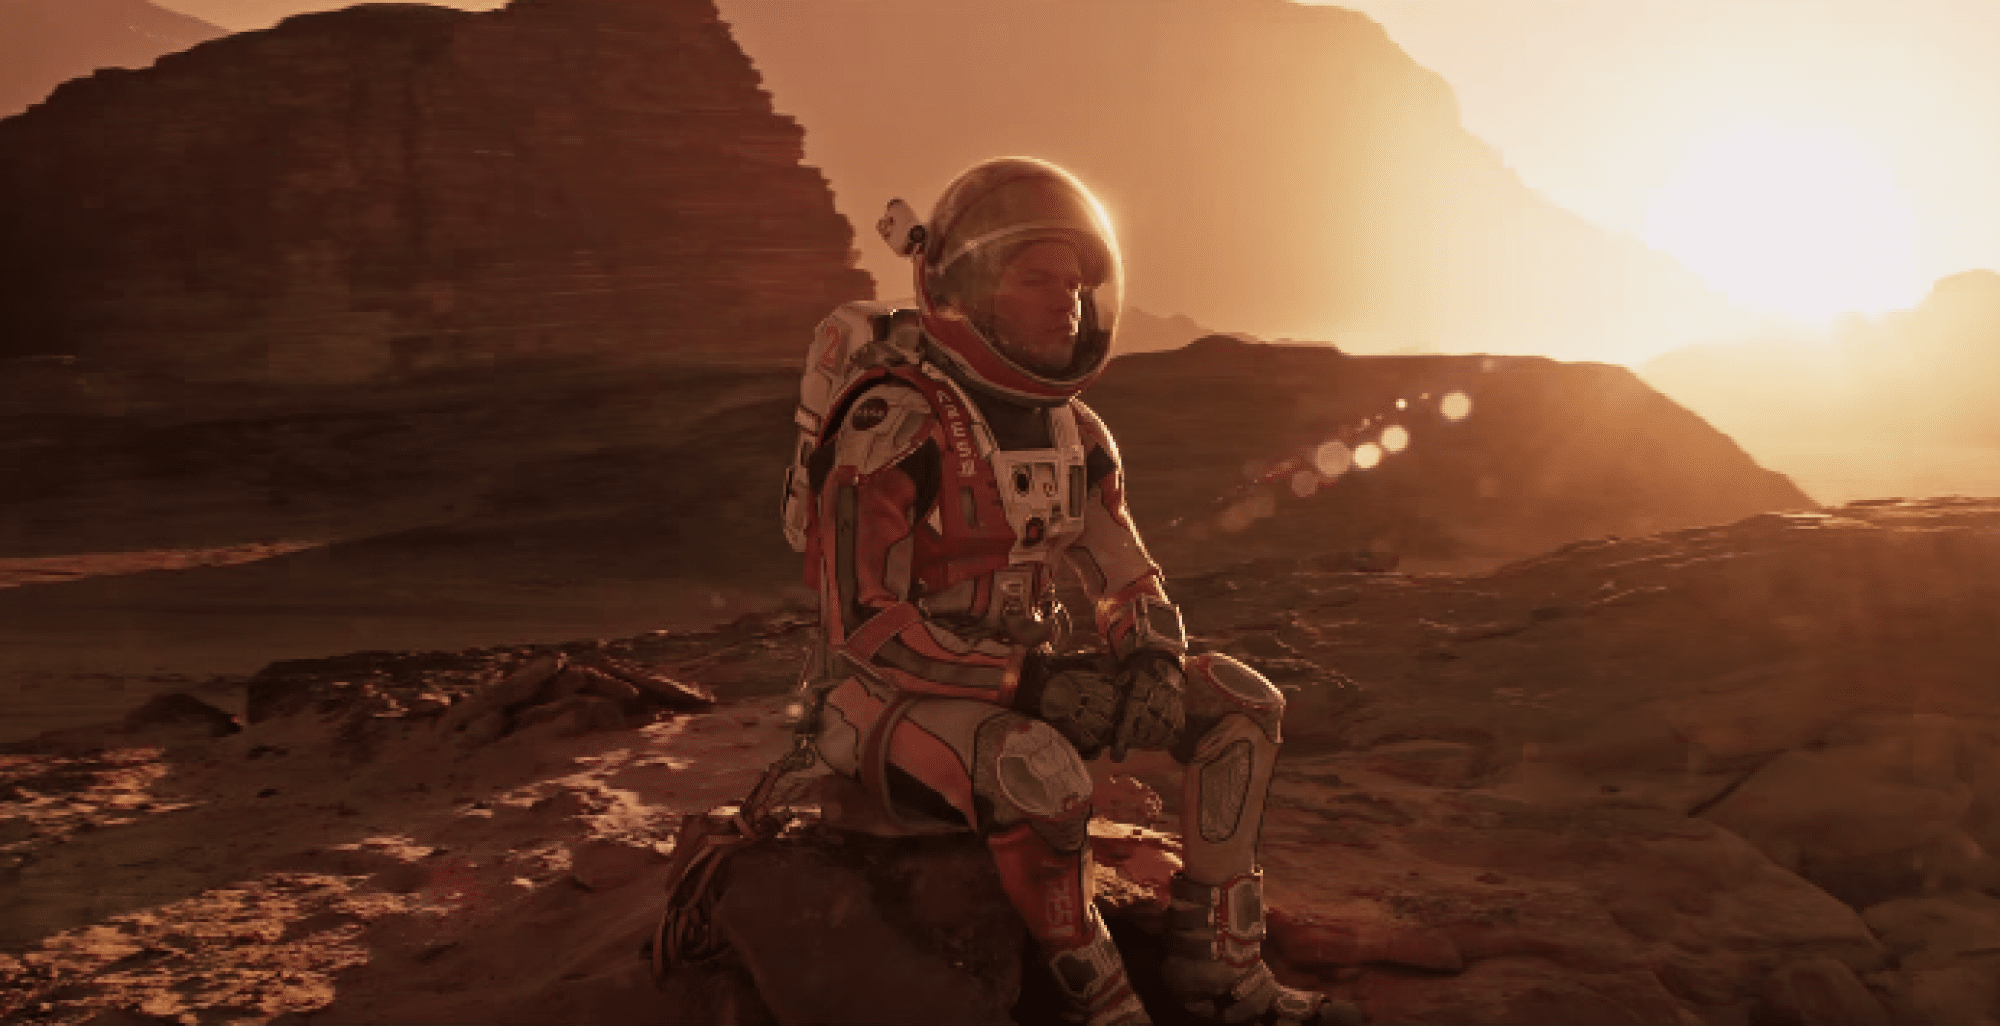 Matt Damon in The Martian (Credits: 20th Century Fox/20th Century Studios/Disney)